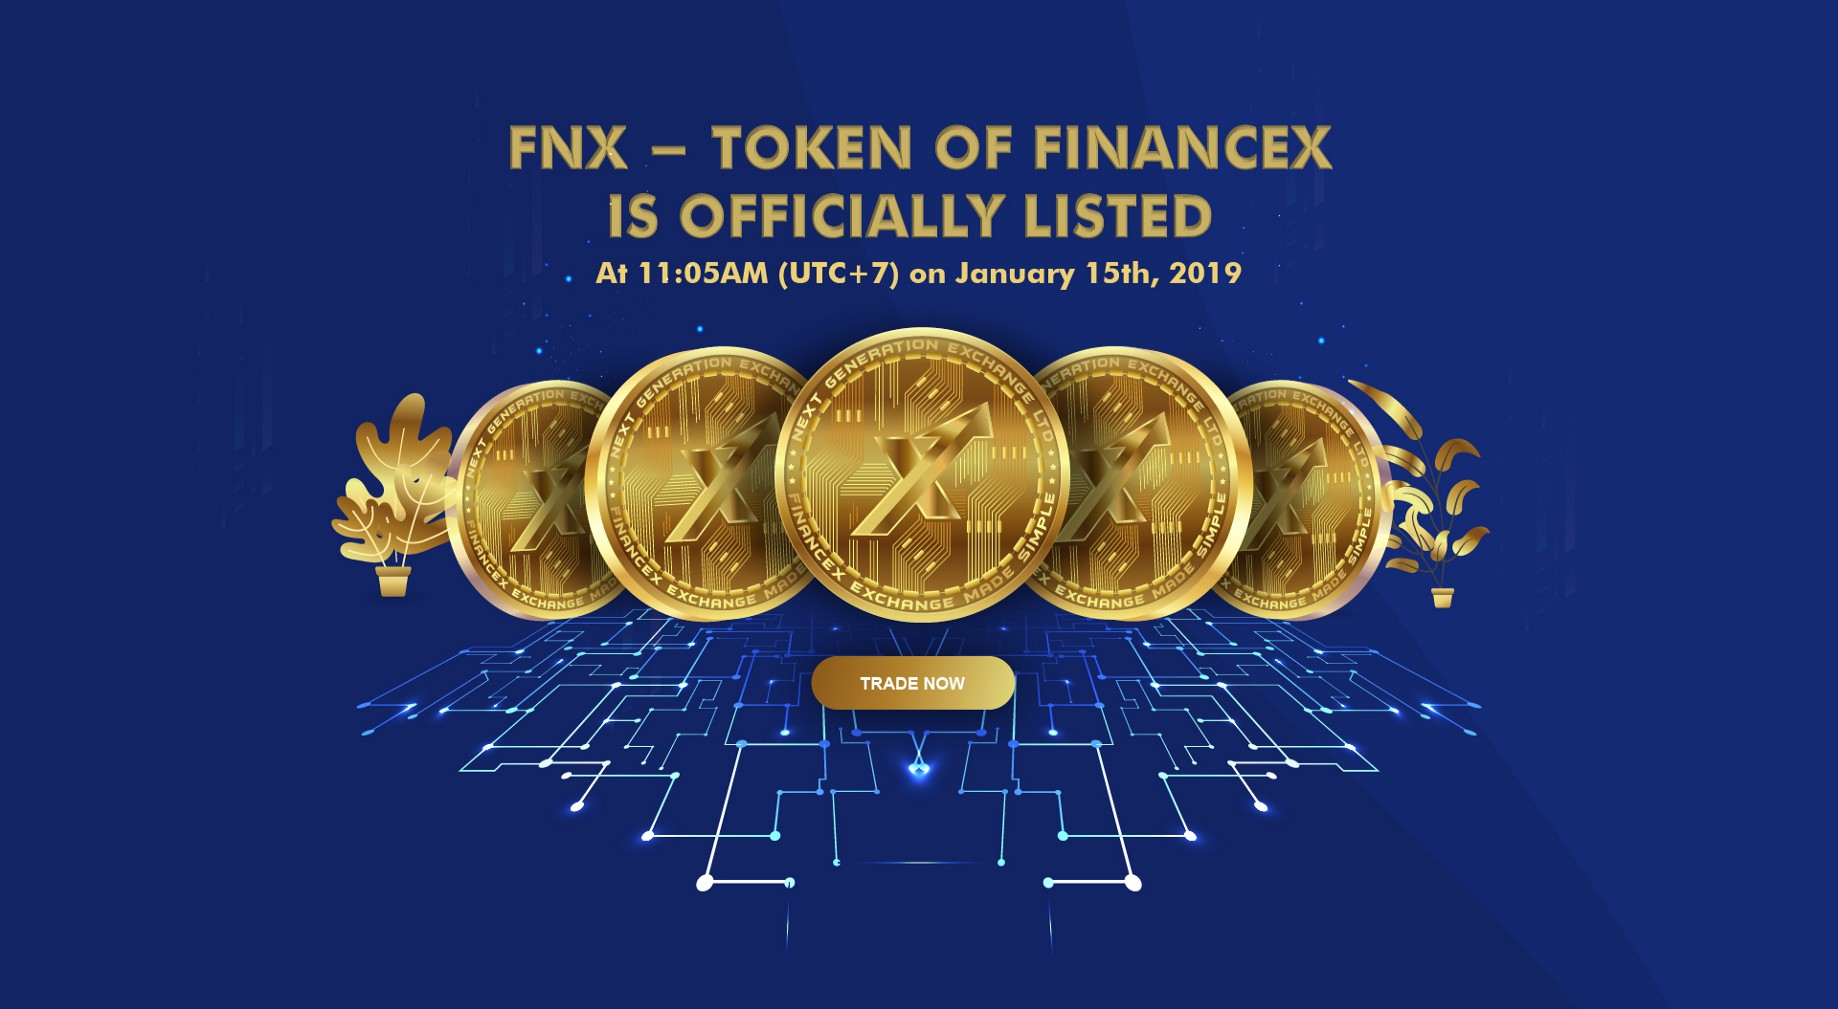 IMPORTANT milestone: FNX is Officially listed on FinanceX